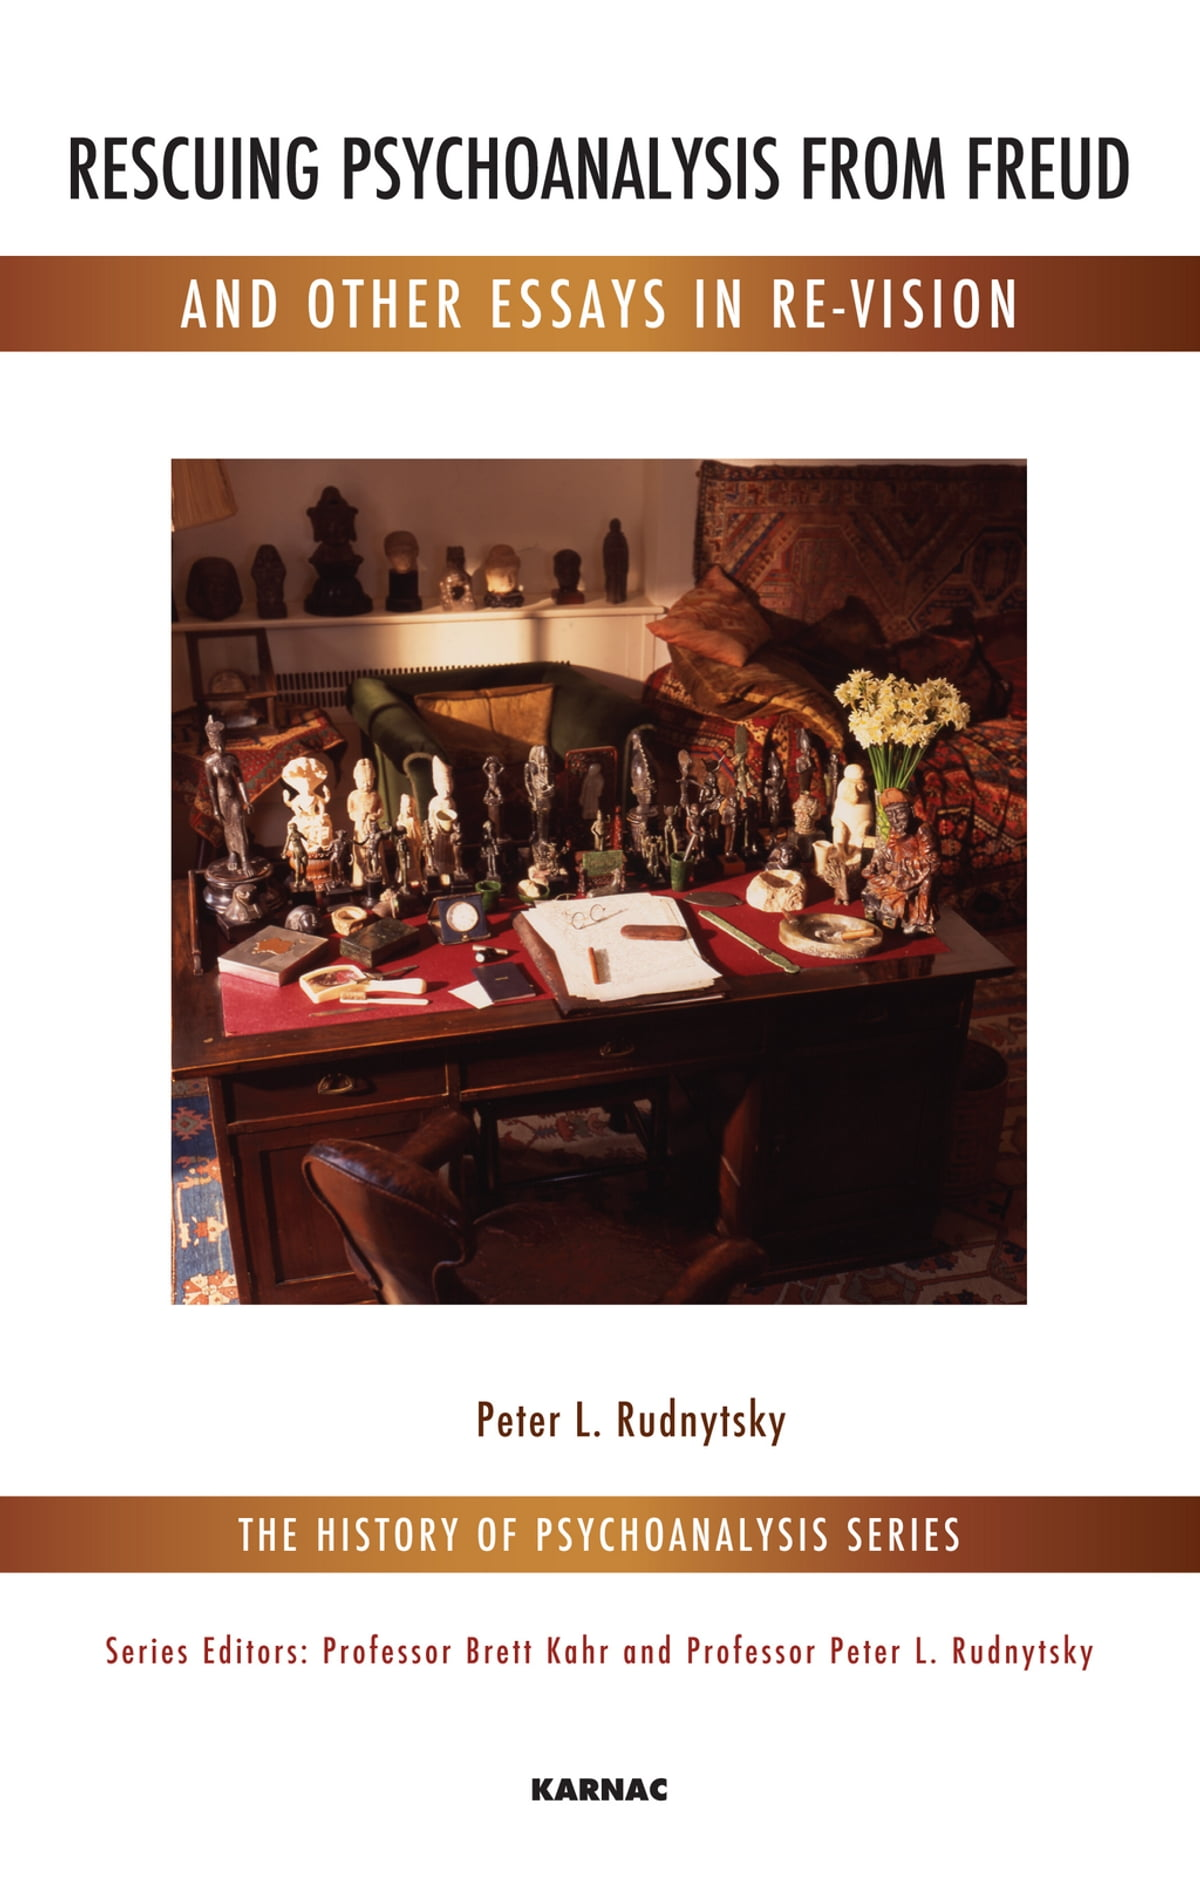 rescuing psychoanalysis from freud and other essays in re vision  rescuing psychoanalysis from freud and other essays in re vision ebook by peter l rudnytsky 9781780498584 rakuten kobo